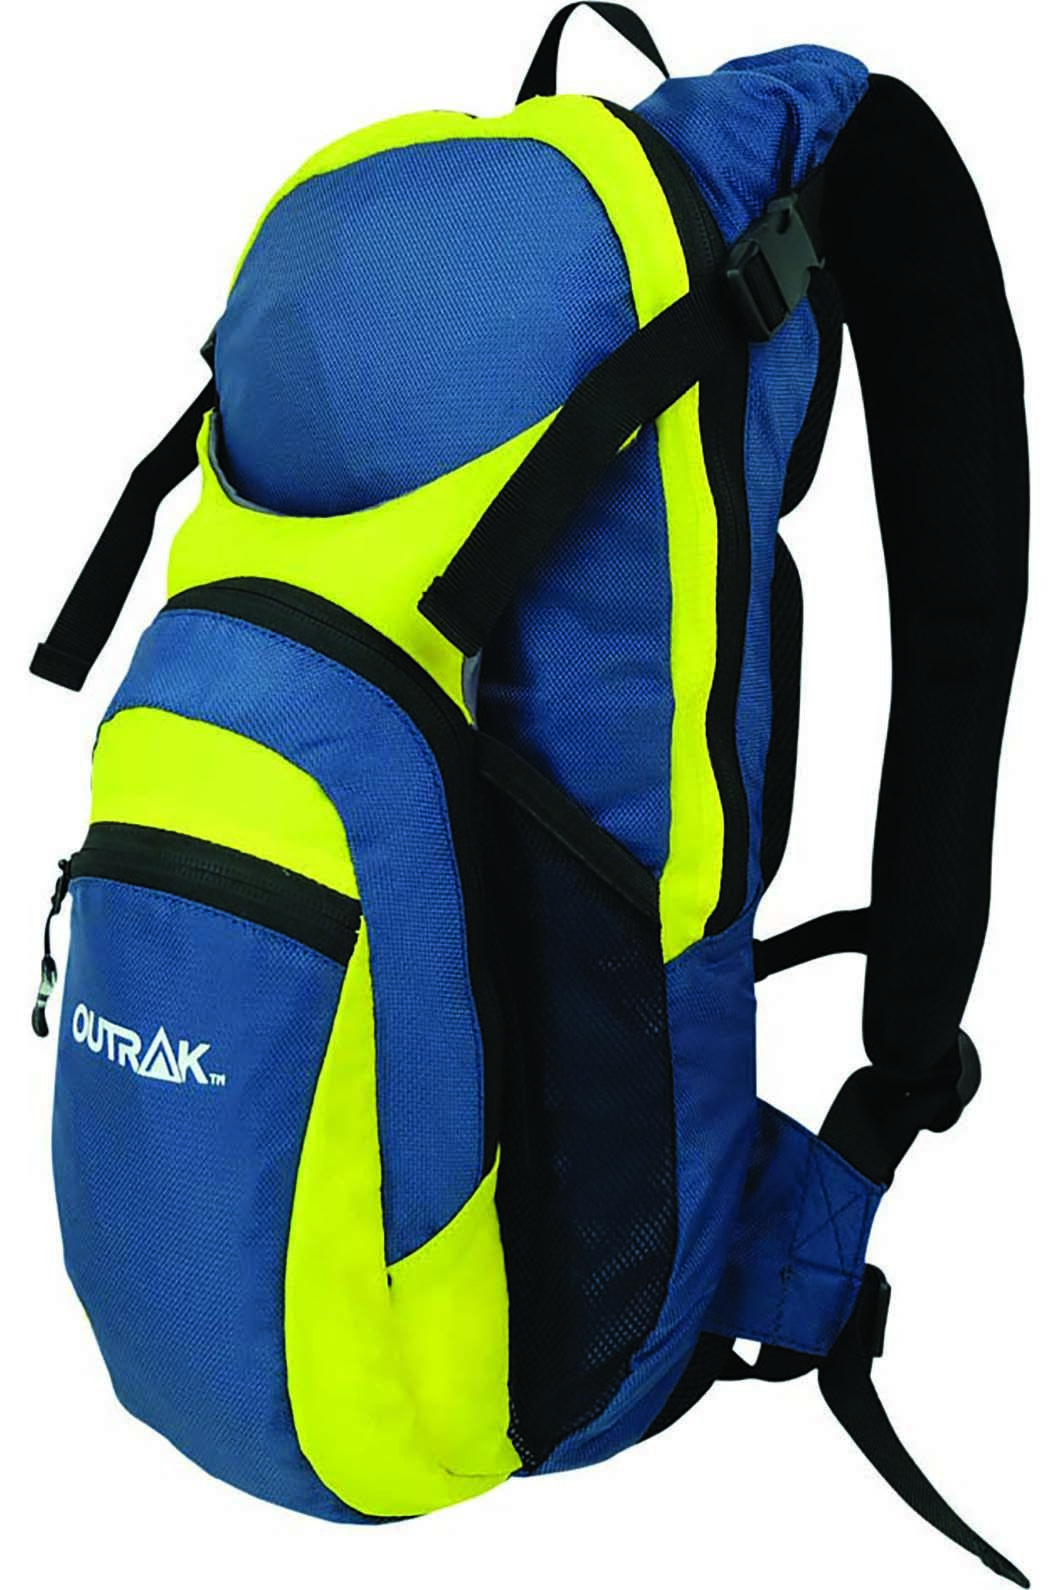 Outrak Vapor Hydration Pack 3LL, NAVY/YELLOW, hi-res